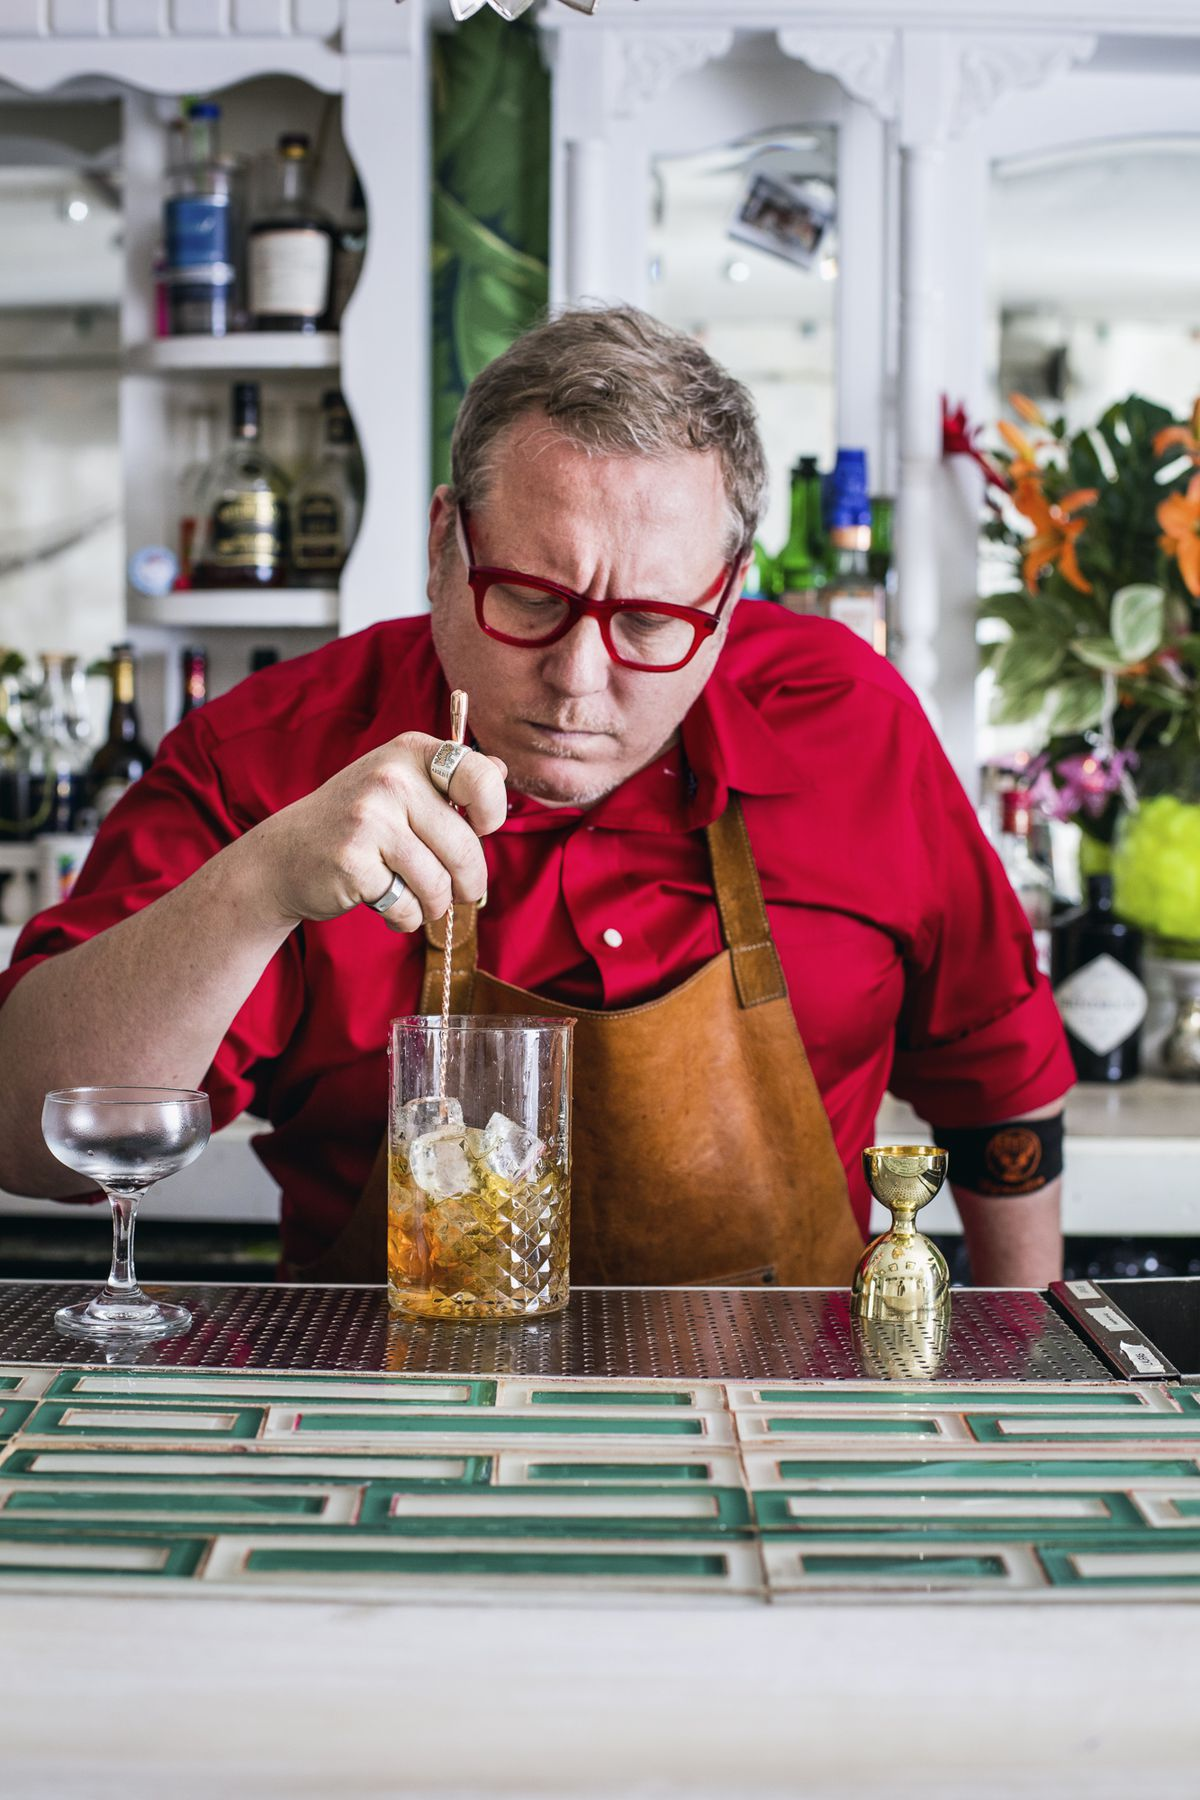 Souther Teague is now overseeing the food and drink menus